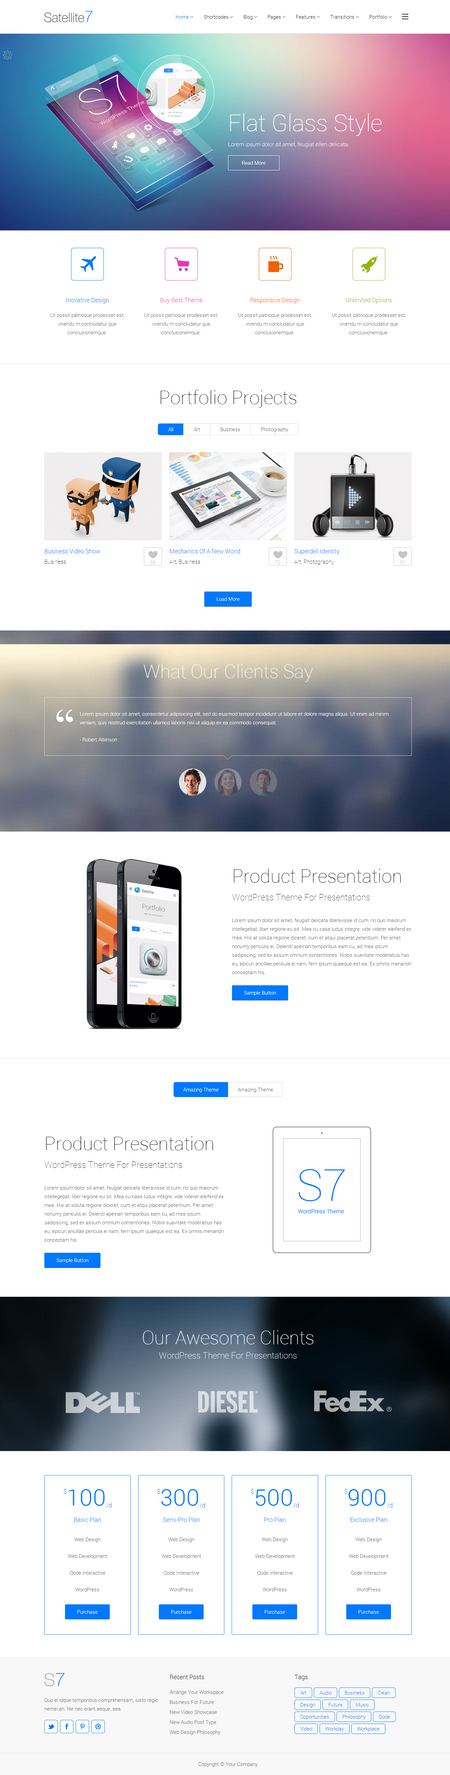 Satellite7 WordPress Theme by wpthemes